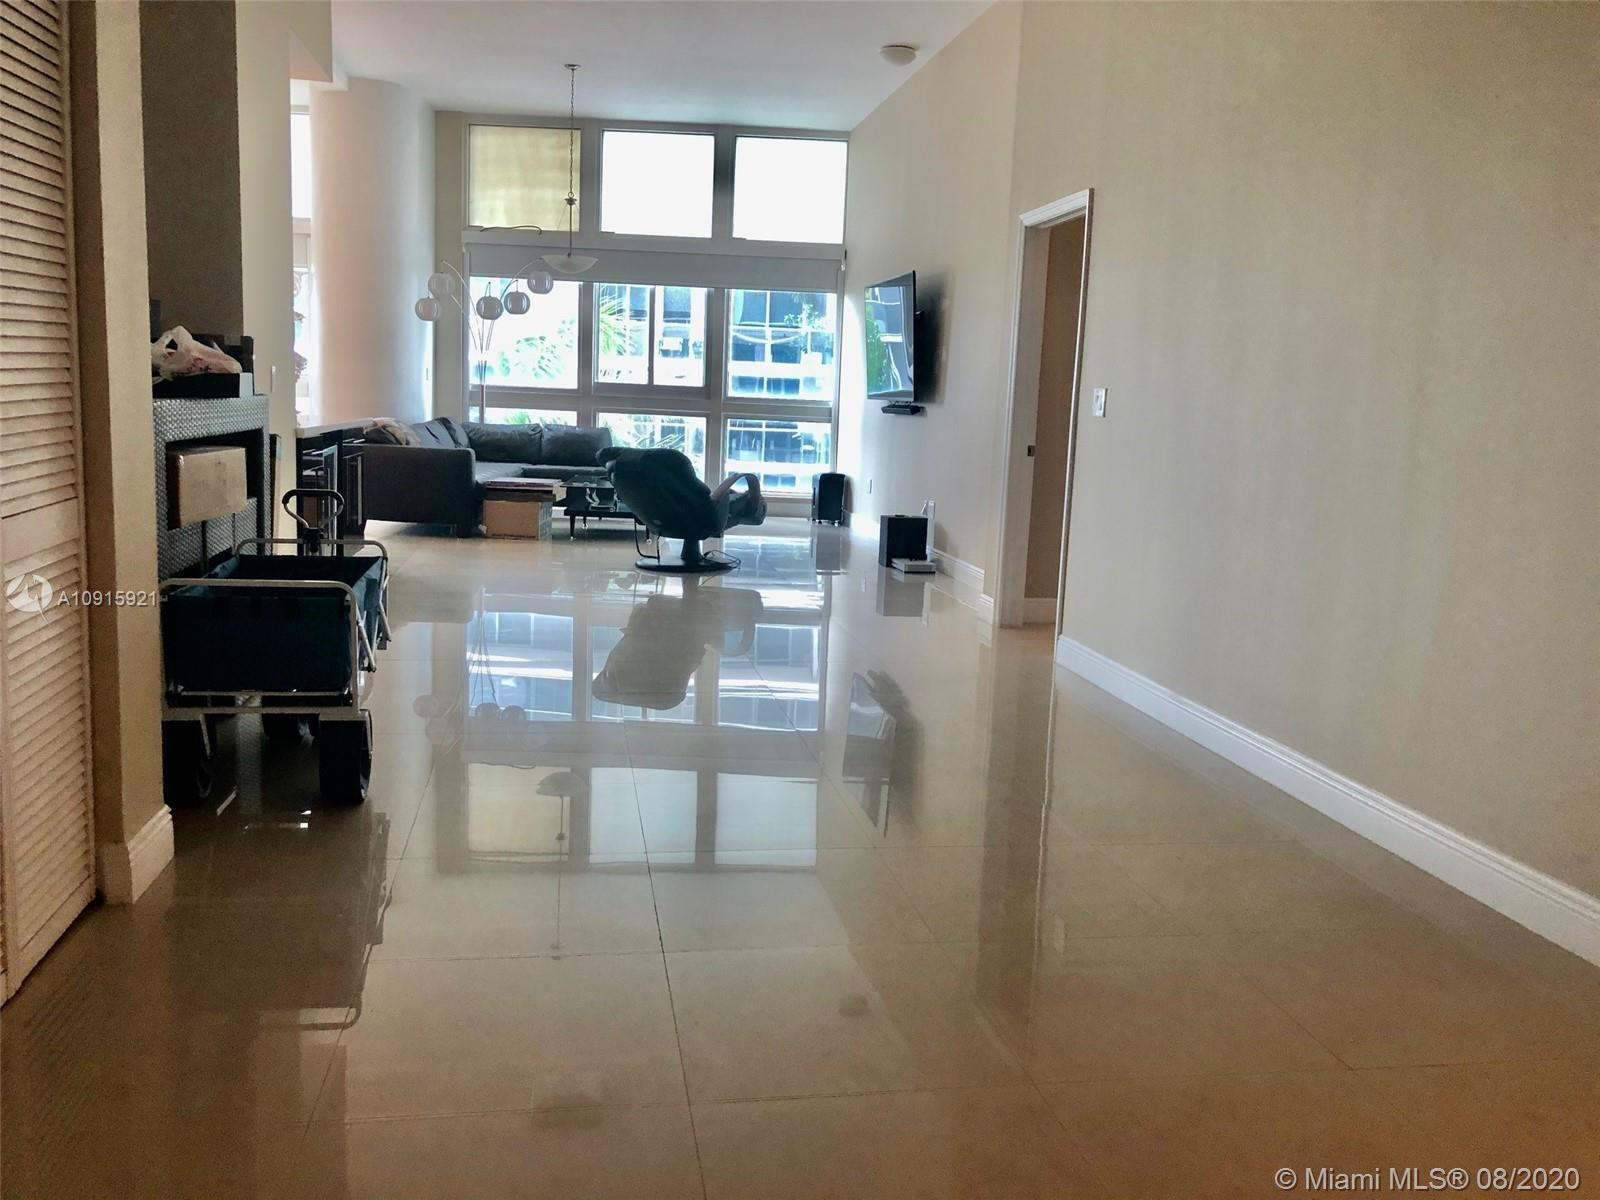 SPECTACULAR HUGE 1249 SQ FT LIVE/WORK SPACE/LOFT 12FT CEILINGS W/IN CLOSED BEDROOM IN EDGEWATER AT T